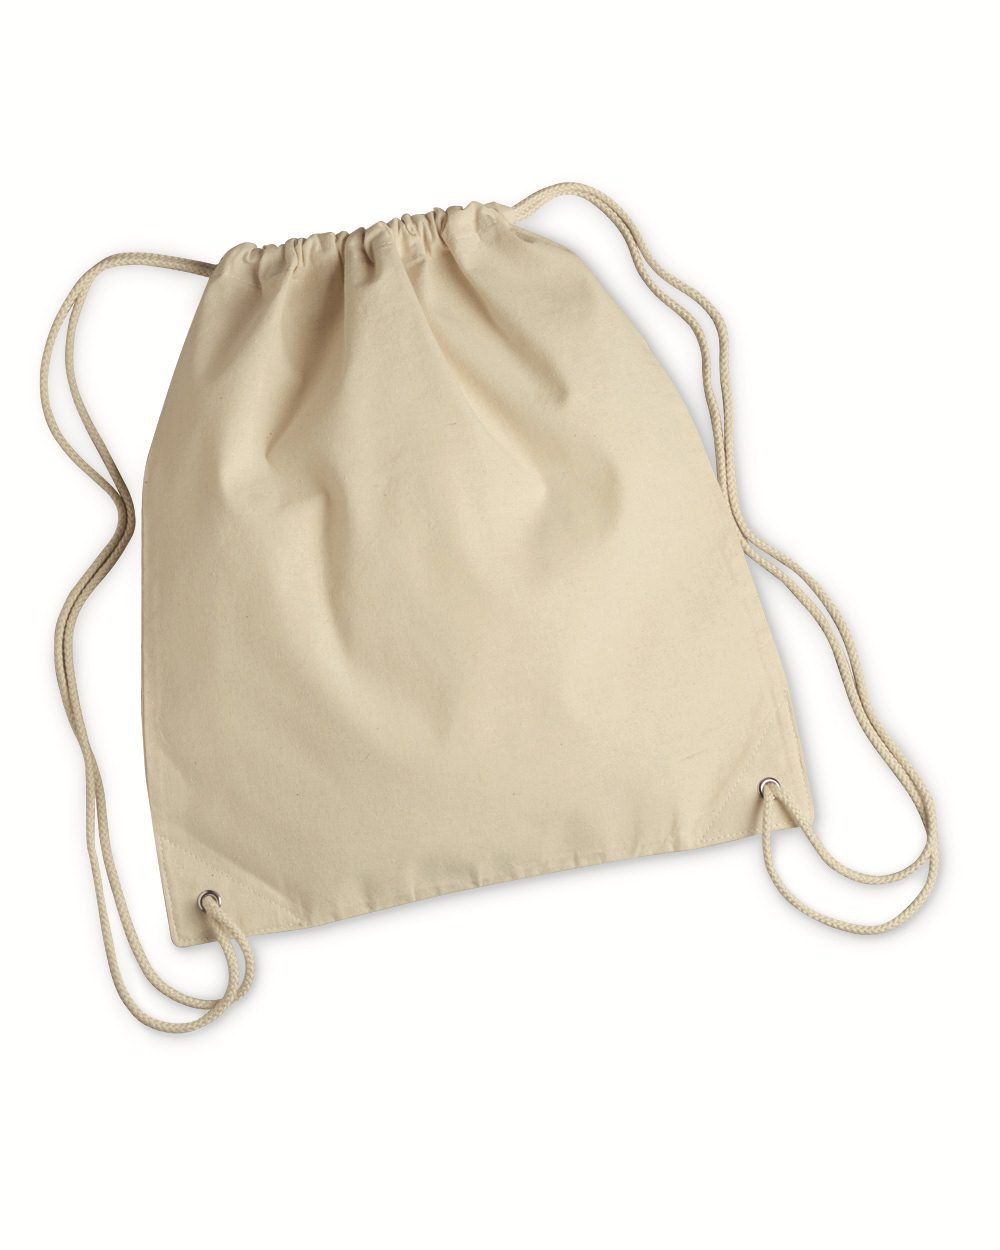 Sale Toppers Anchor Drawstring Bags - from $1.15